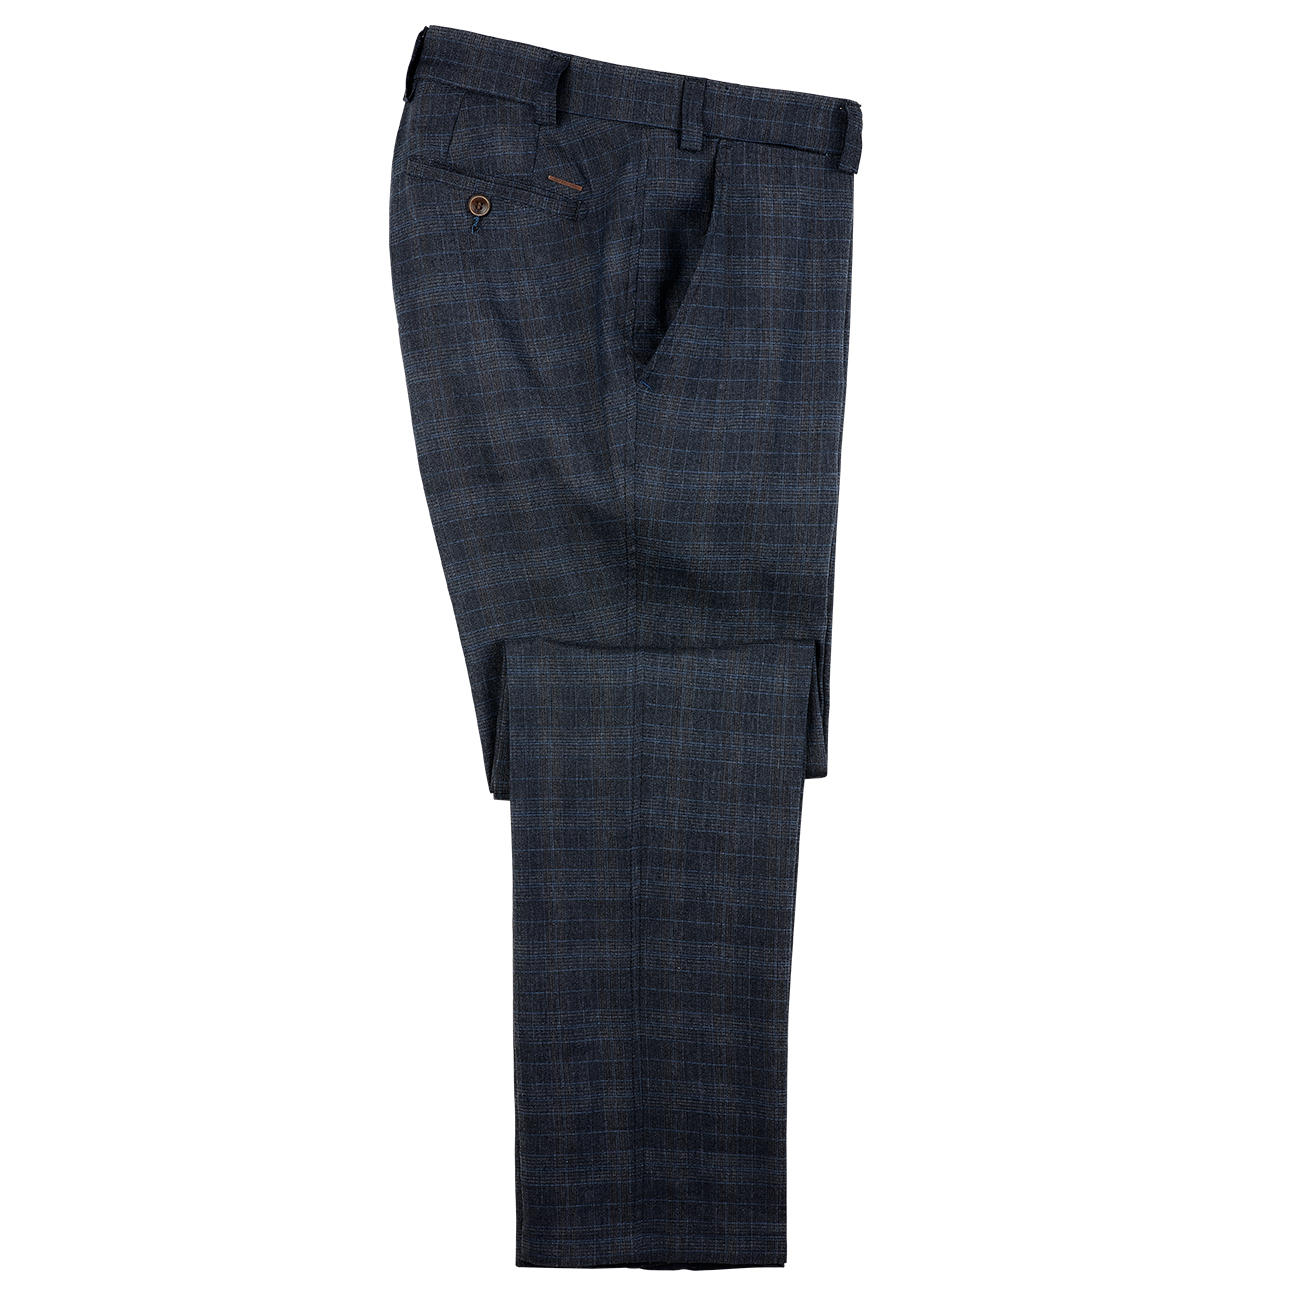 shopping popular stores the cheapest Eurex by Brax Linen Blend Business Trousers discover